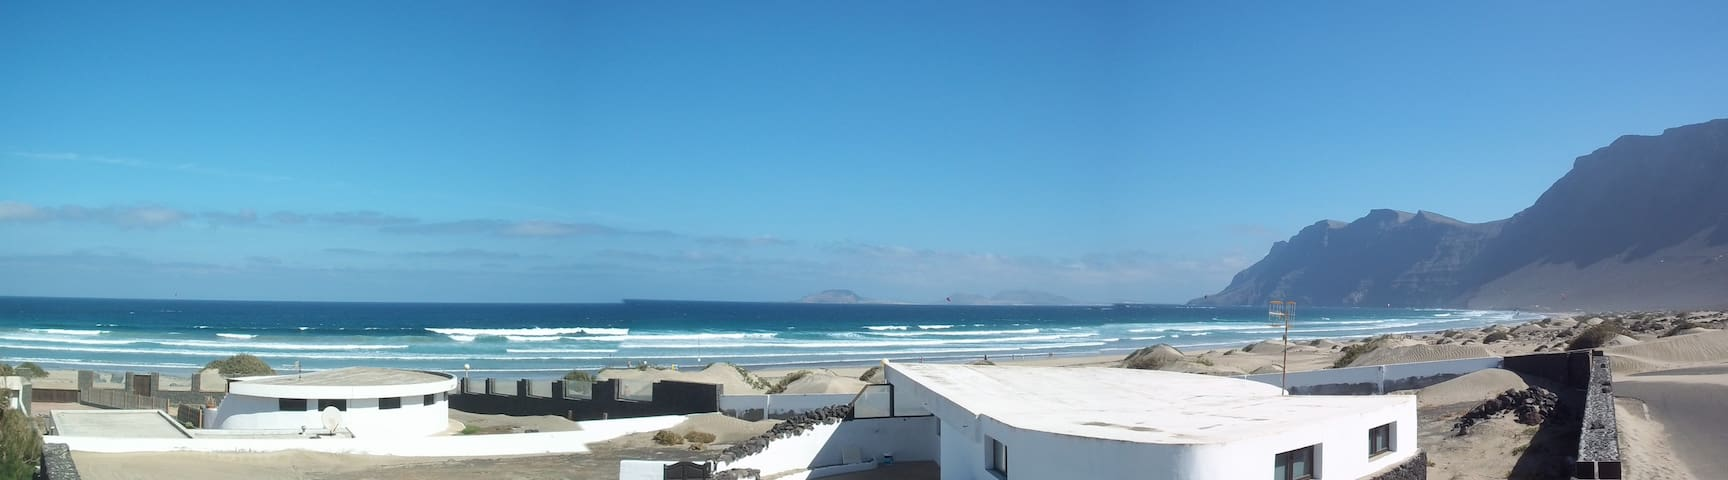 BUNGALOW BONGILOW FOR 8P IN FAMARA - Teguise - Pis